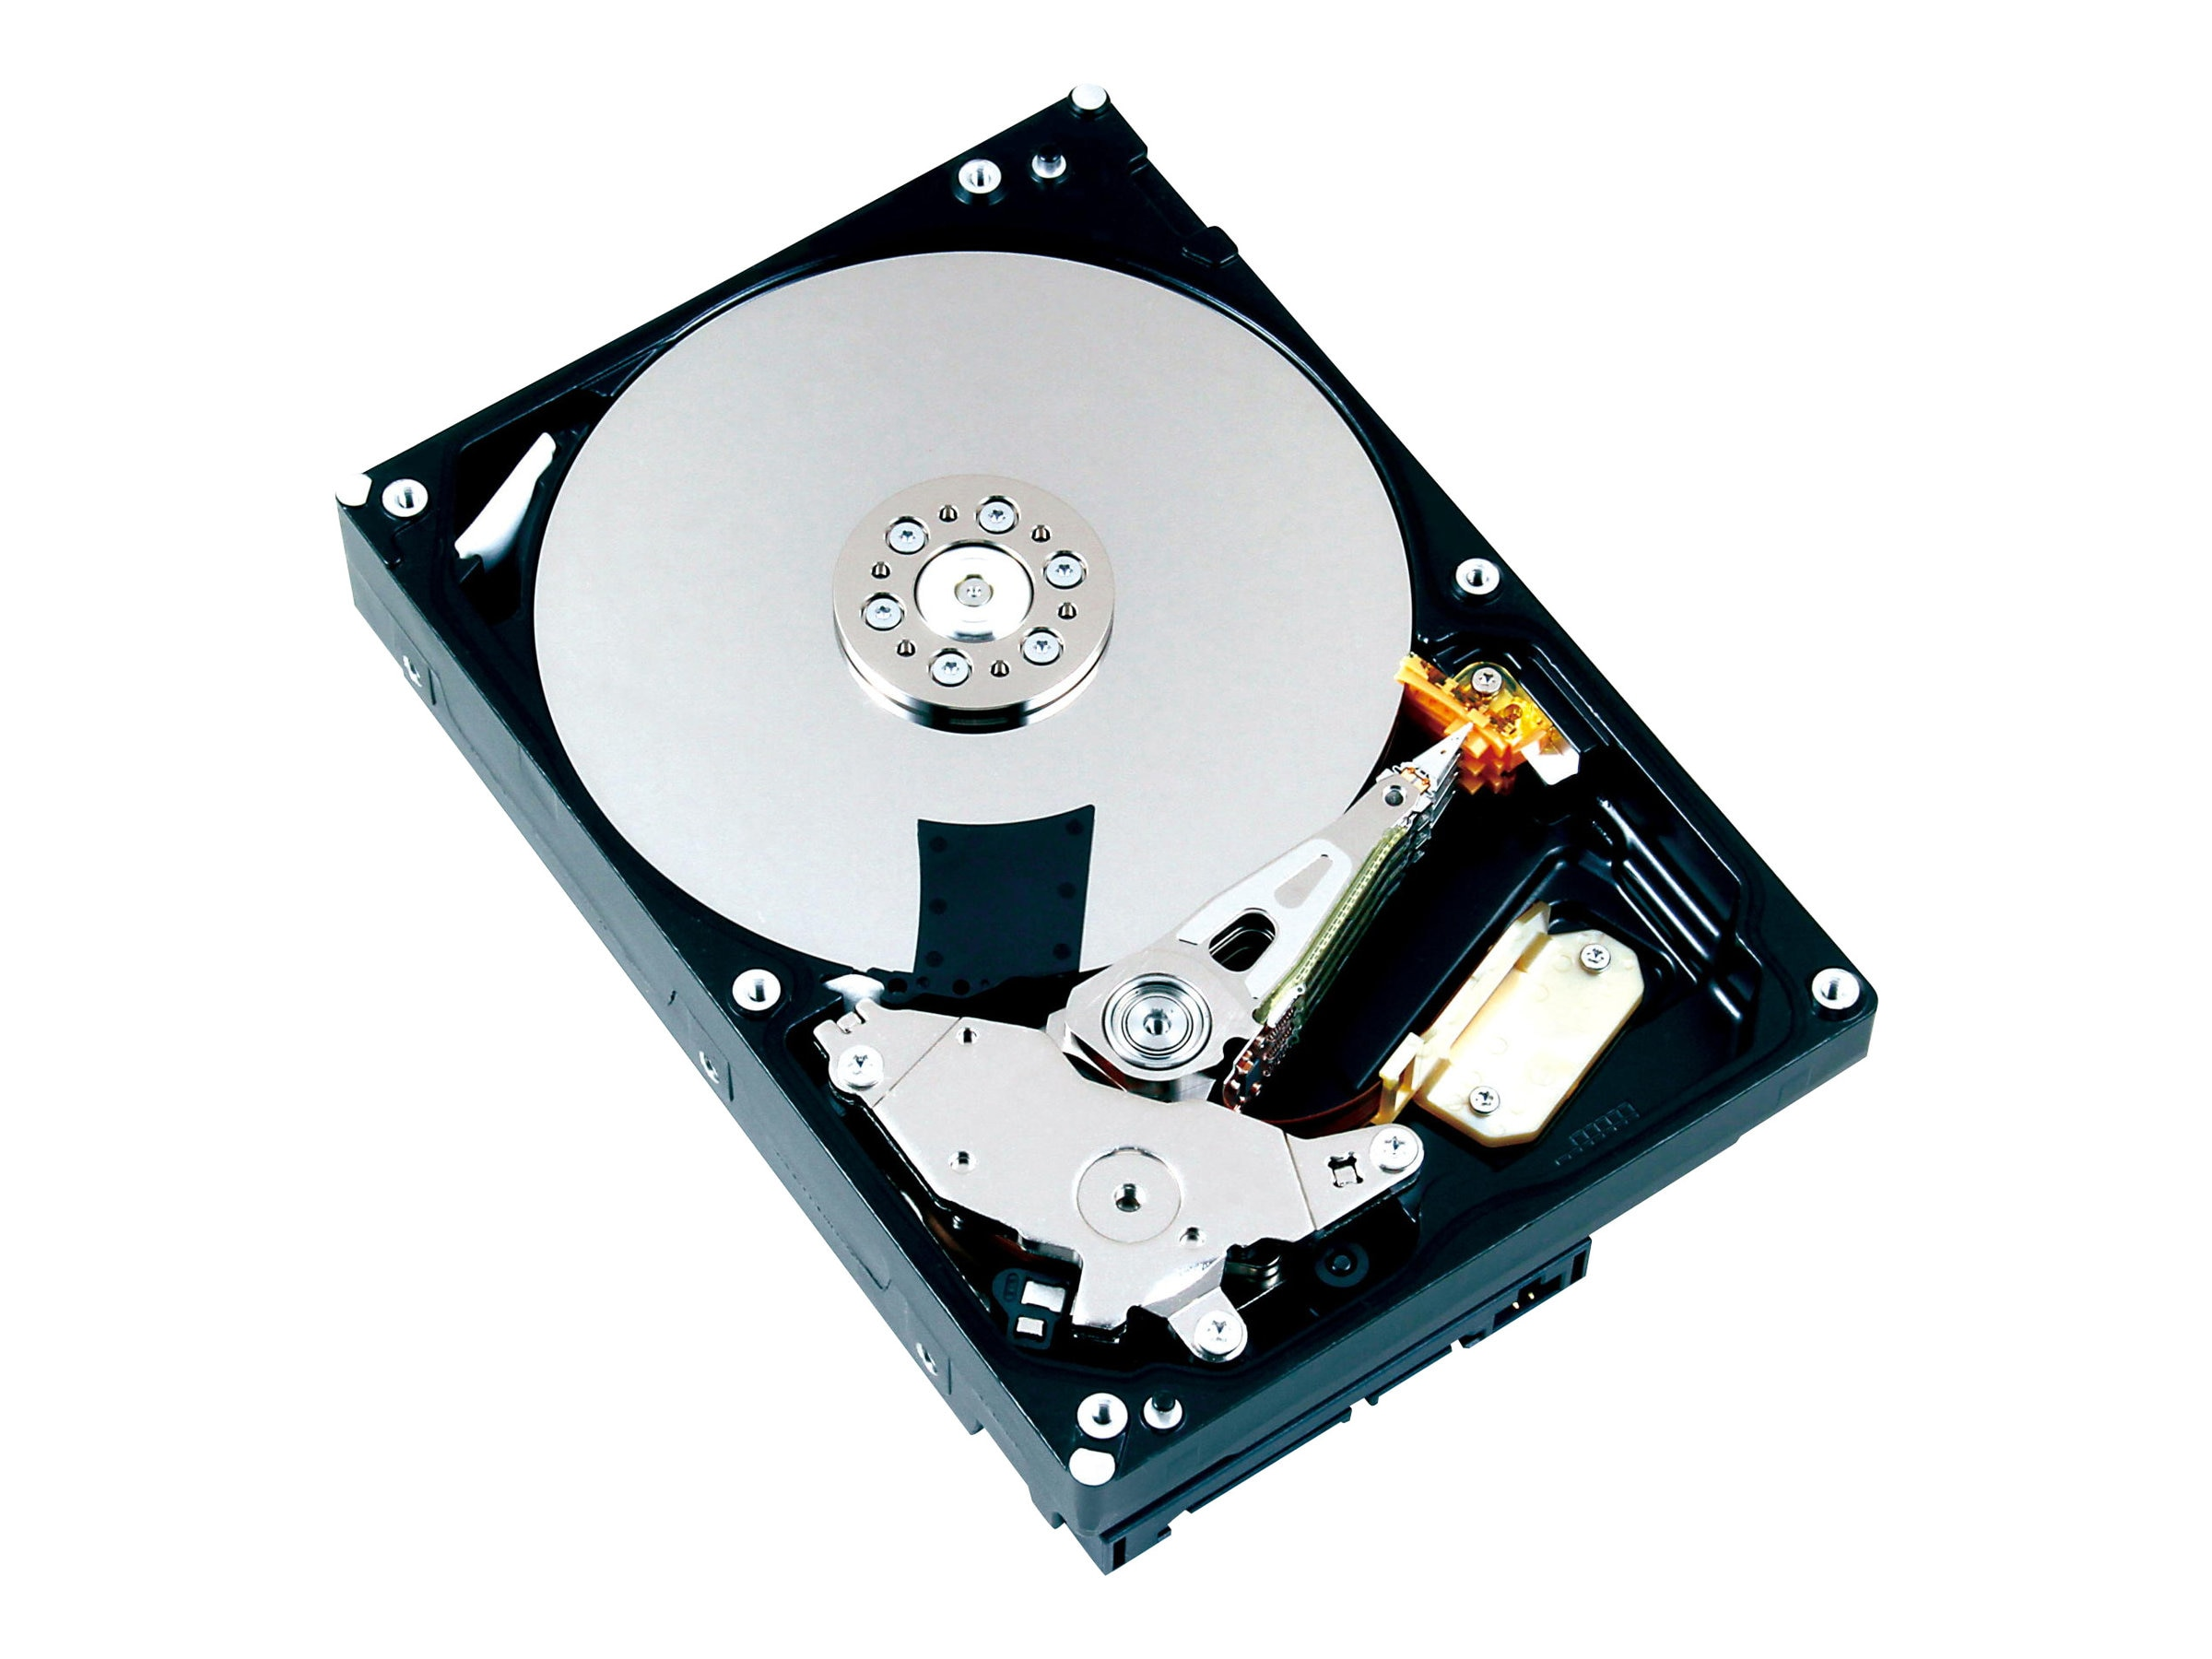 Toshiba 500GB 7200RPM SATA Internal Hard Drive, HDKPC01